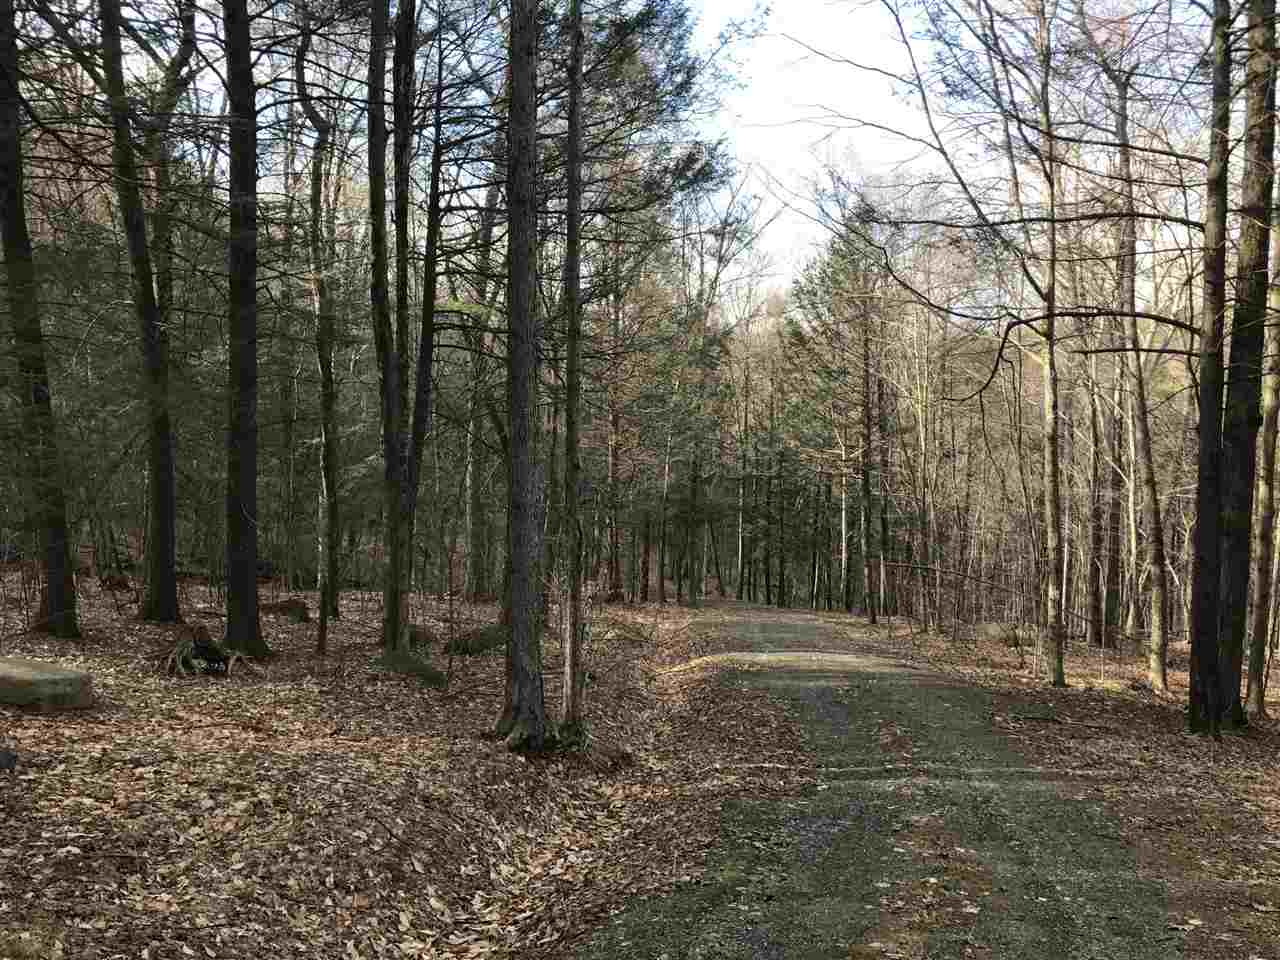 95 plus or minus acre parcel with extensive town...